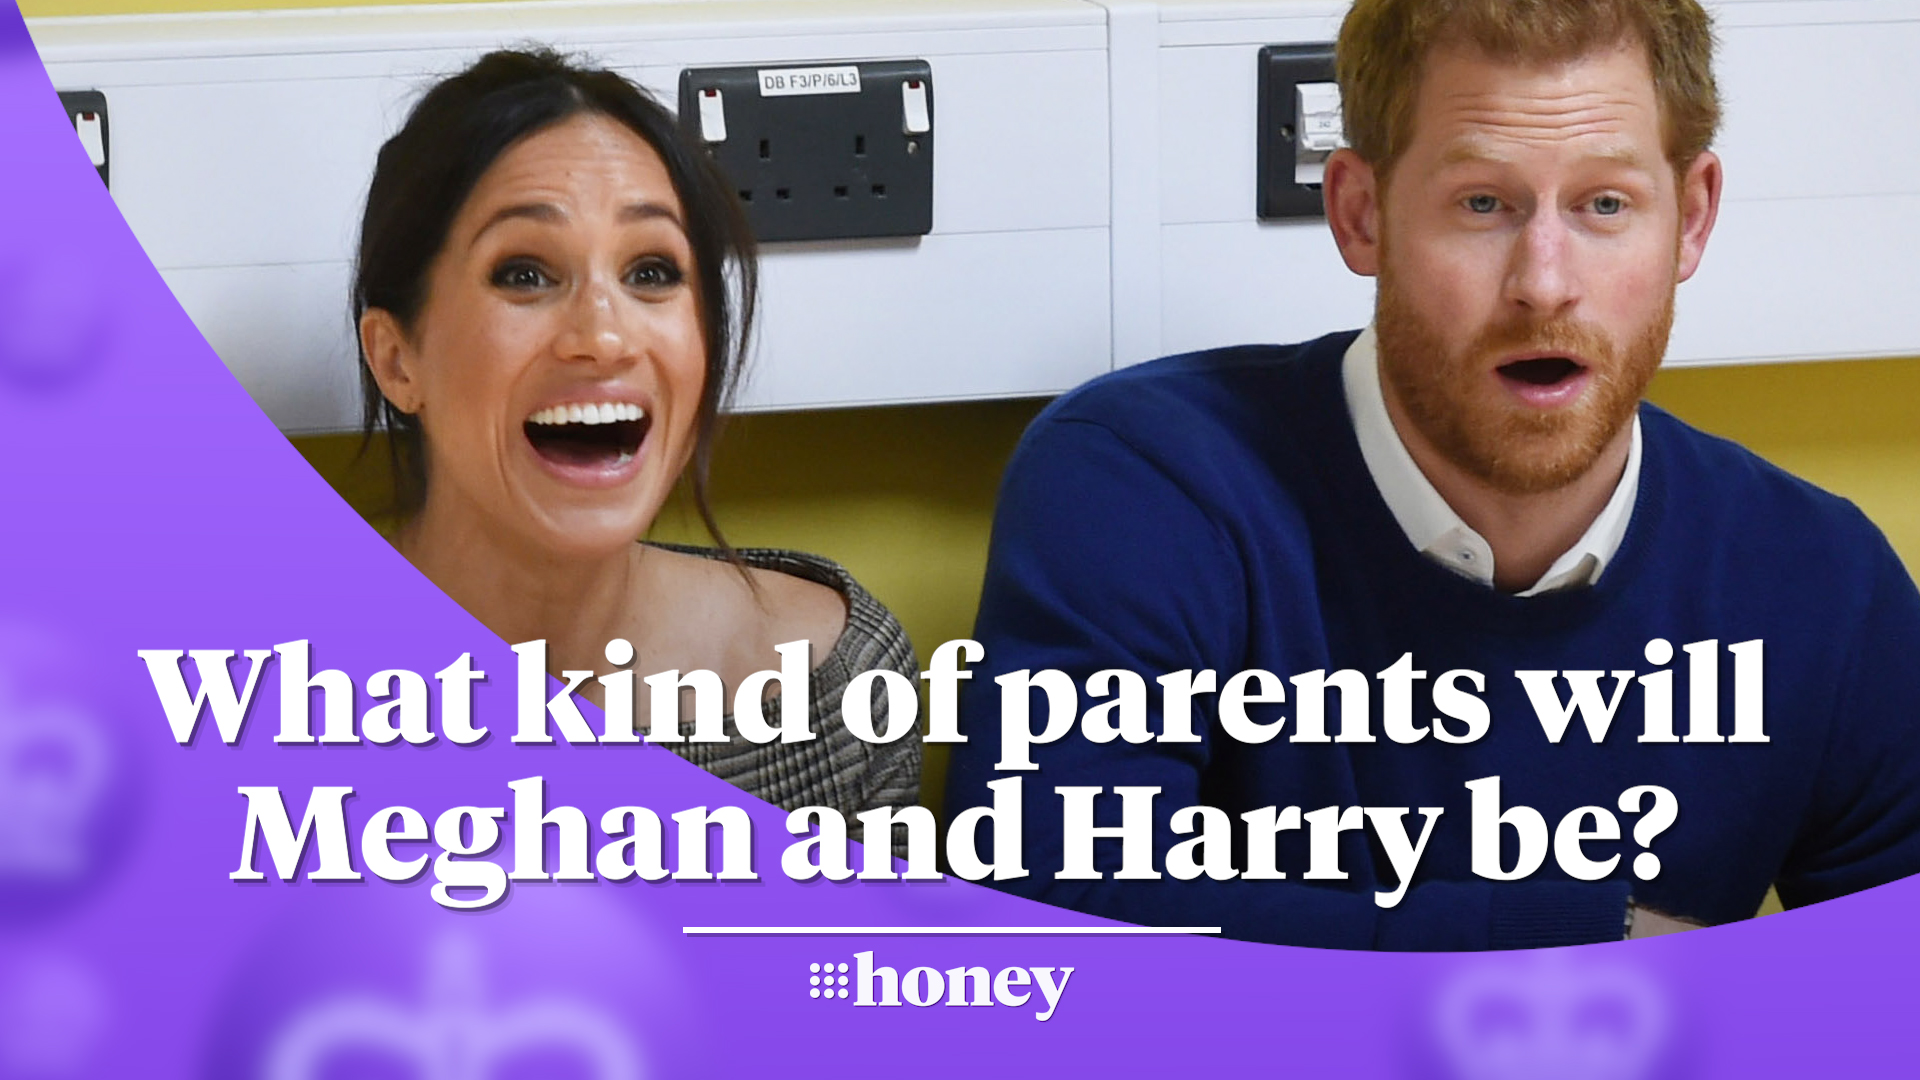 Video: Watch Prince Harry's First Interview After Becoming a Father